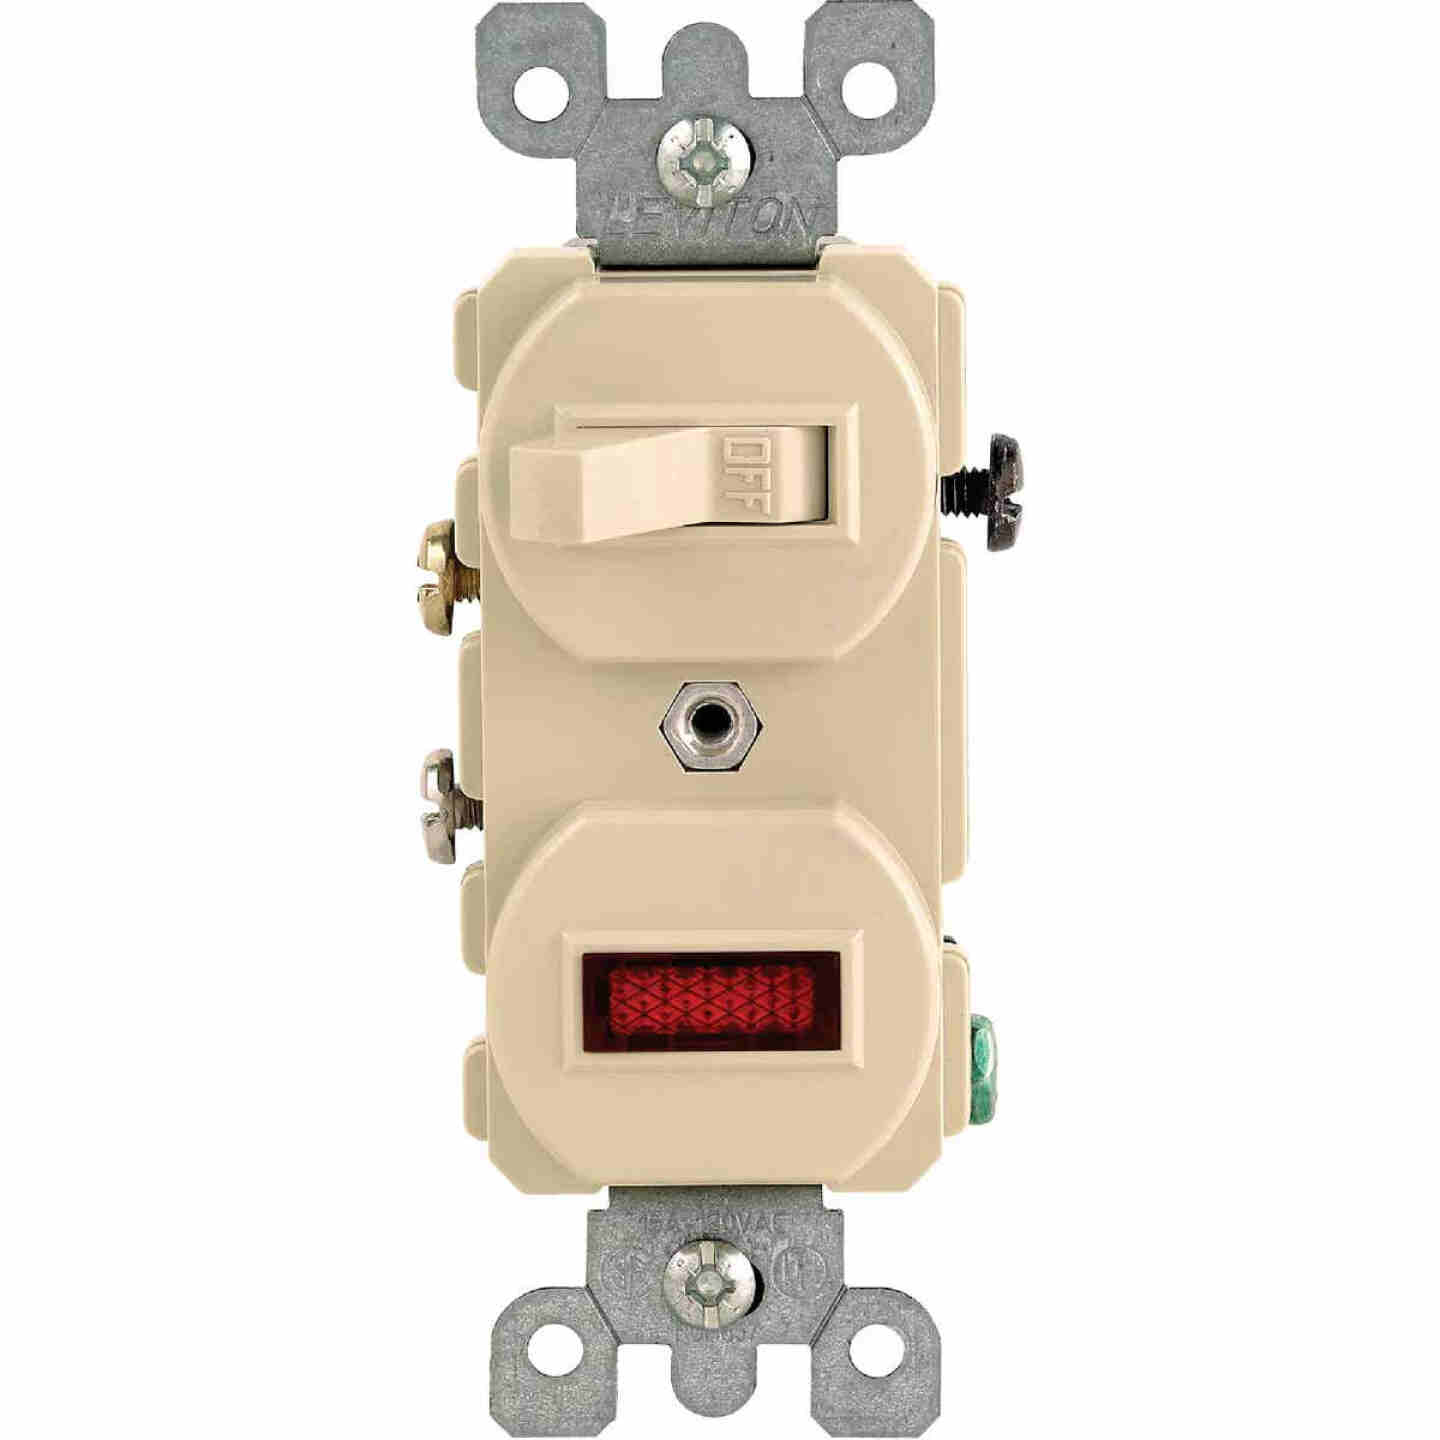 Leviton Commercial Grade Ivory 15A Switch & Pilot Light Image 1